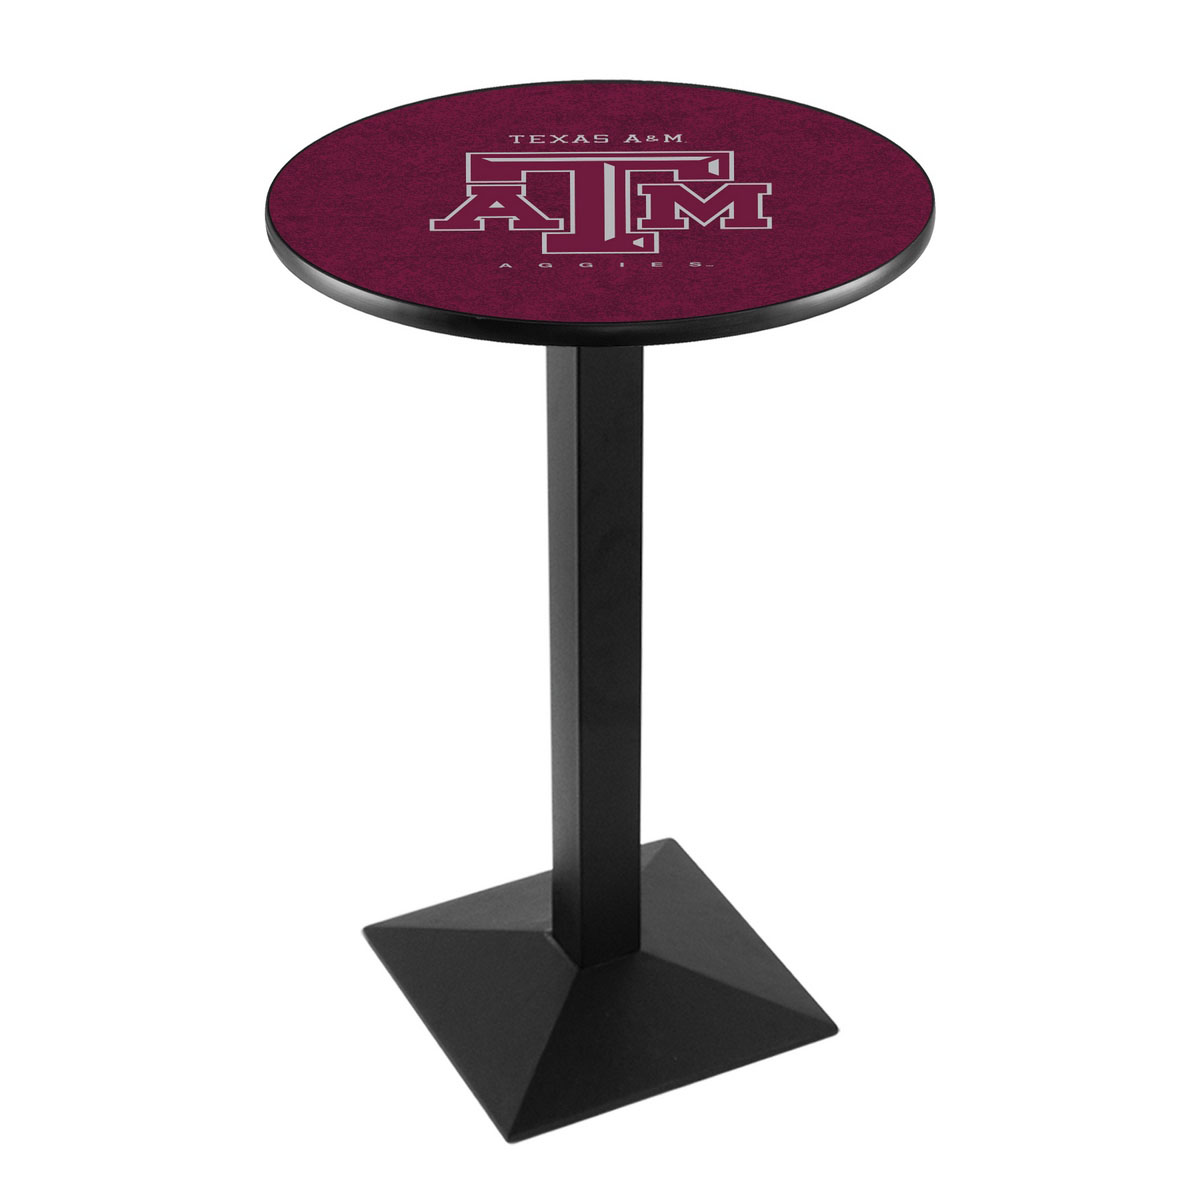 Stunning Texas A Logo Pub Bar Table Square Stand Product Photo